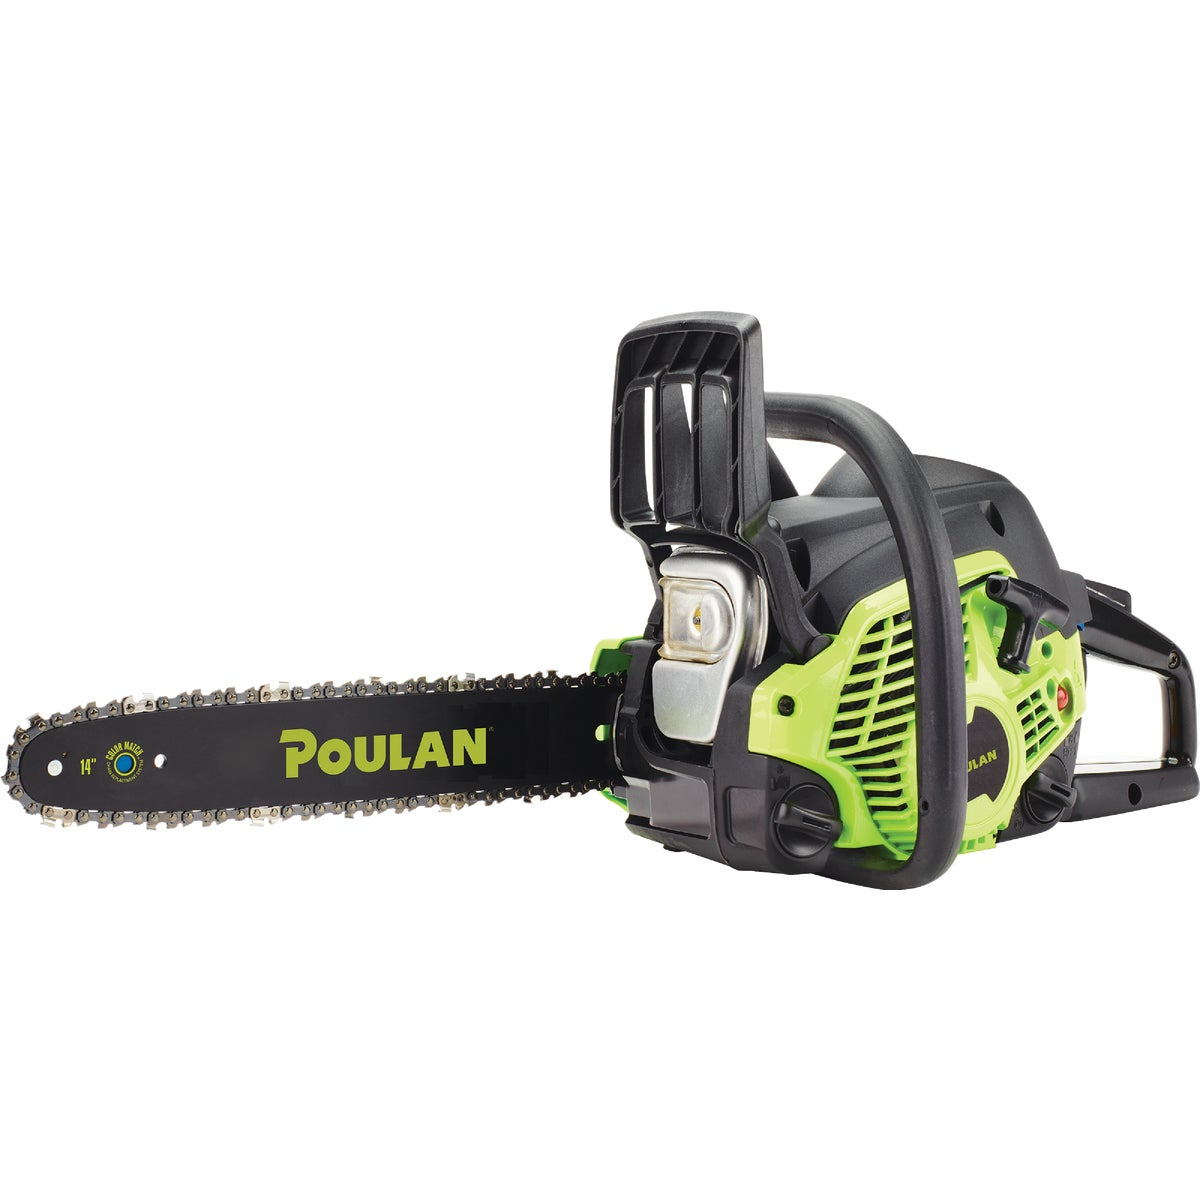 "14"" 33CC GAS CHAINSAW - 952802026 by Poulan"